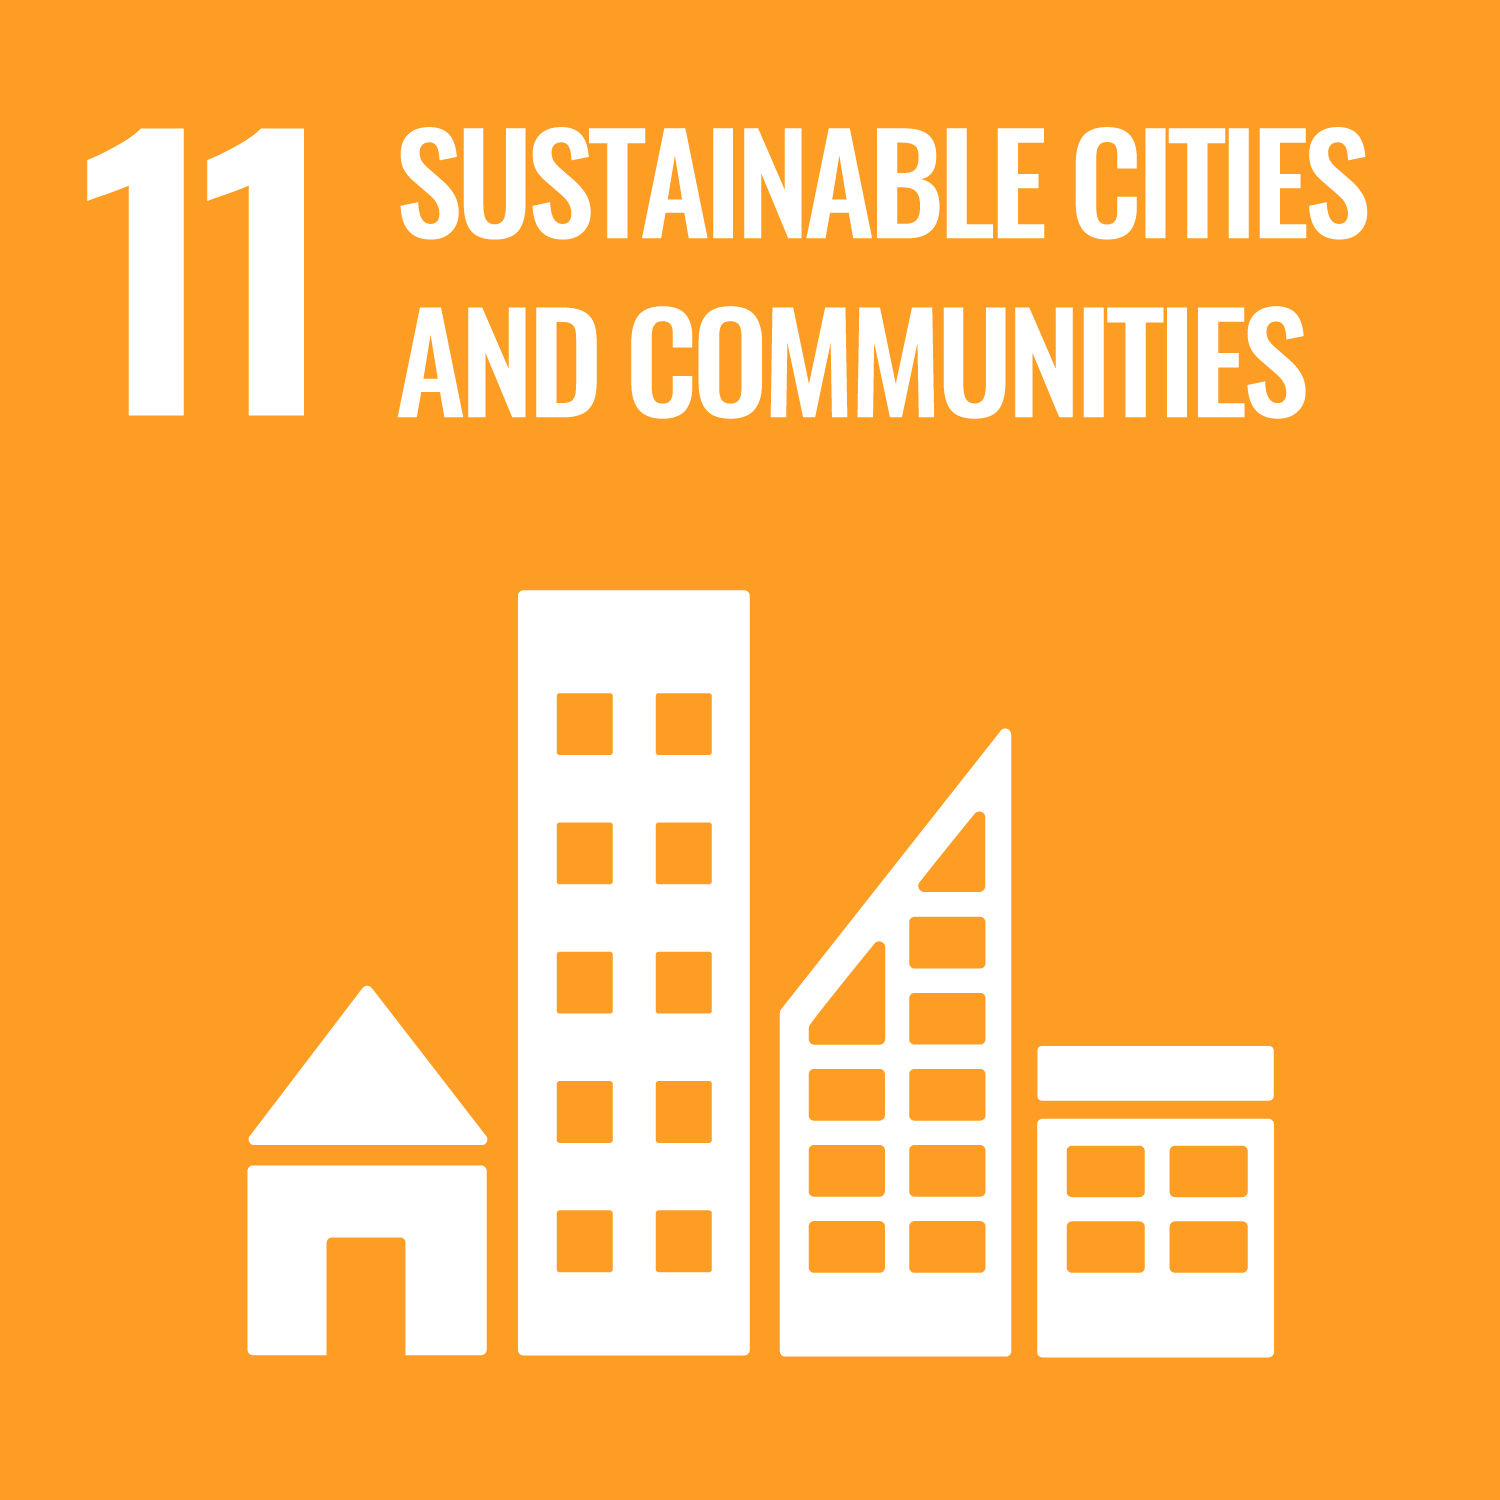 UNs Sustainable Development Goal 11 Sustainable cities and communities. Link to UNs Sustainable development goal number 11